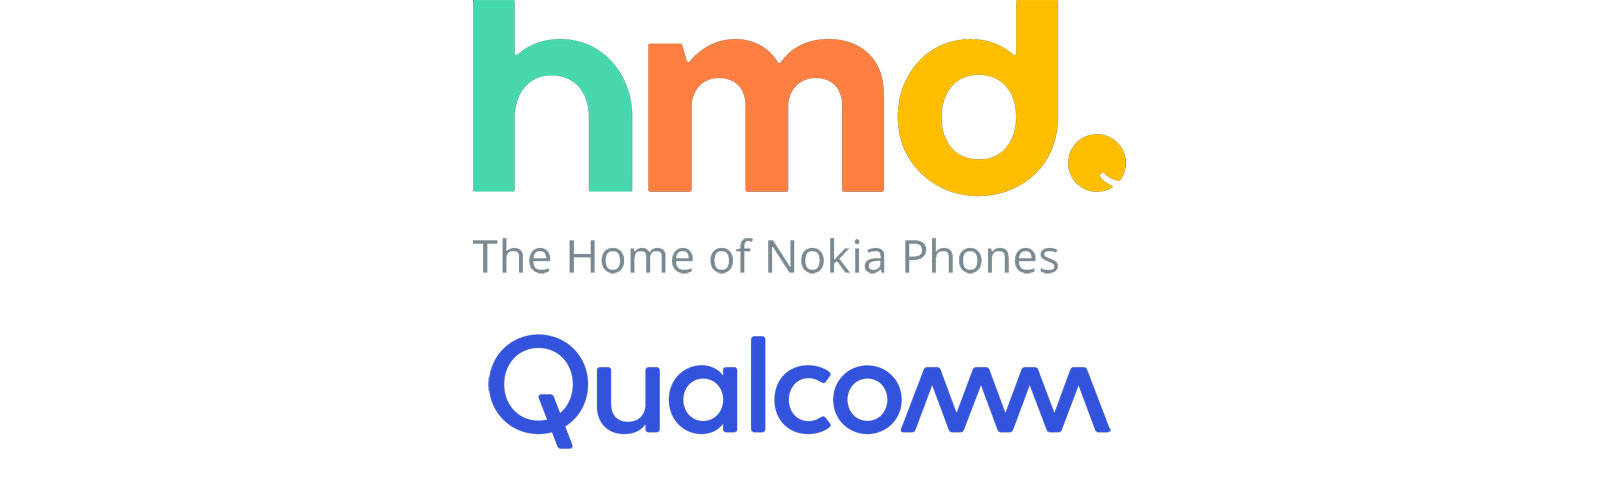 HMD Global and Qualcomm enter a direct worldwide license agreement